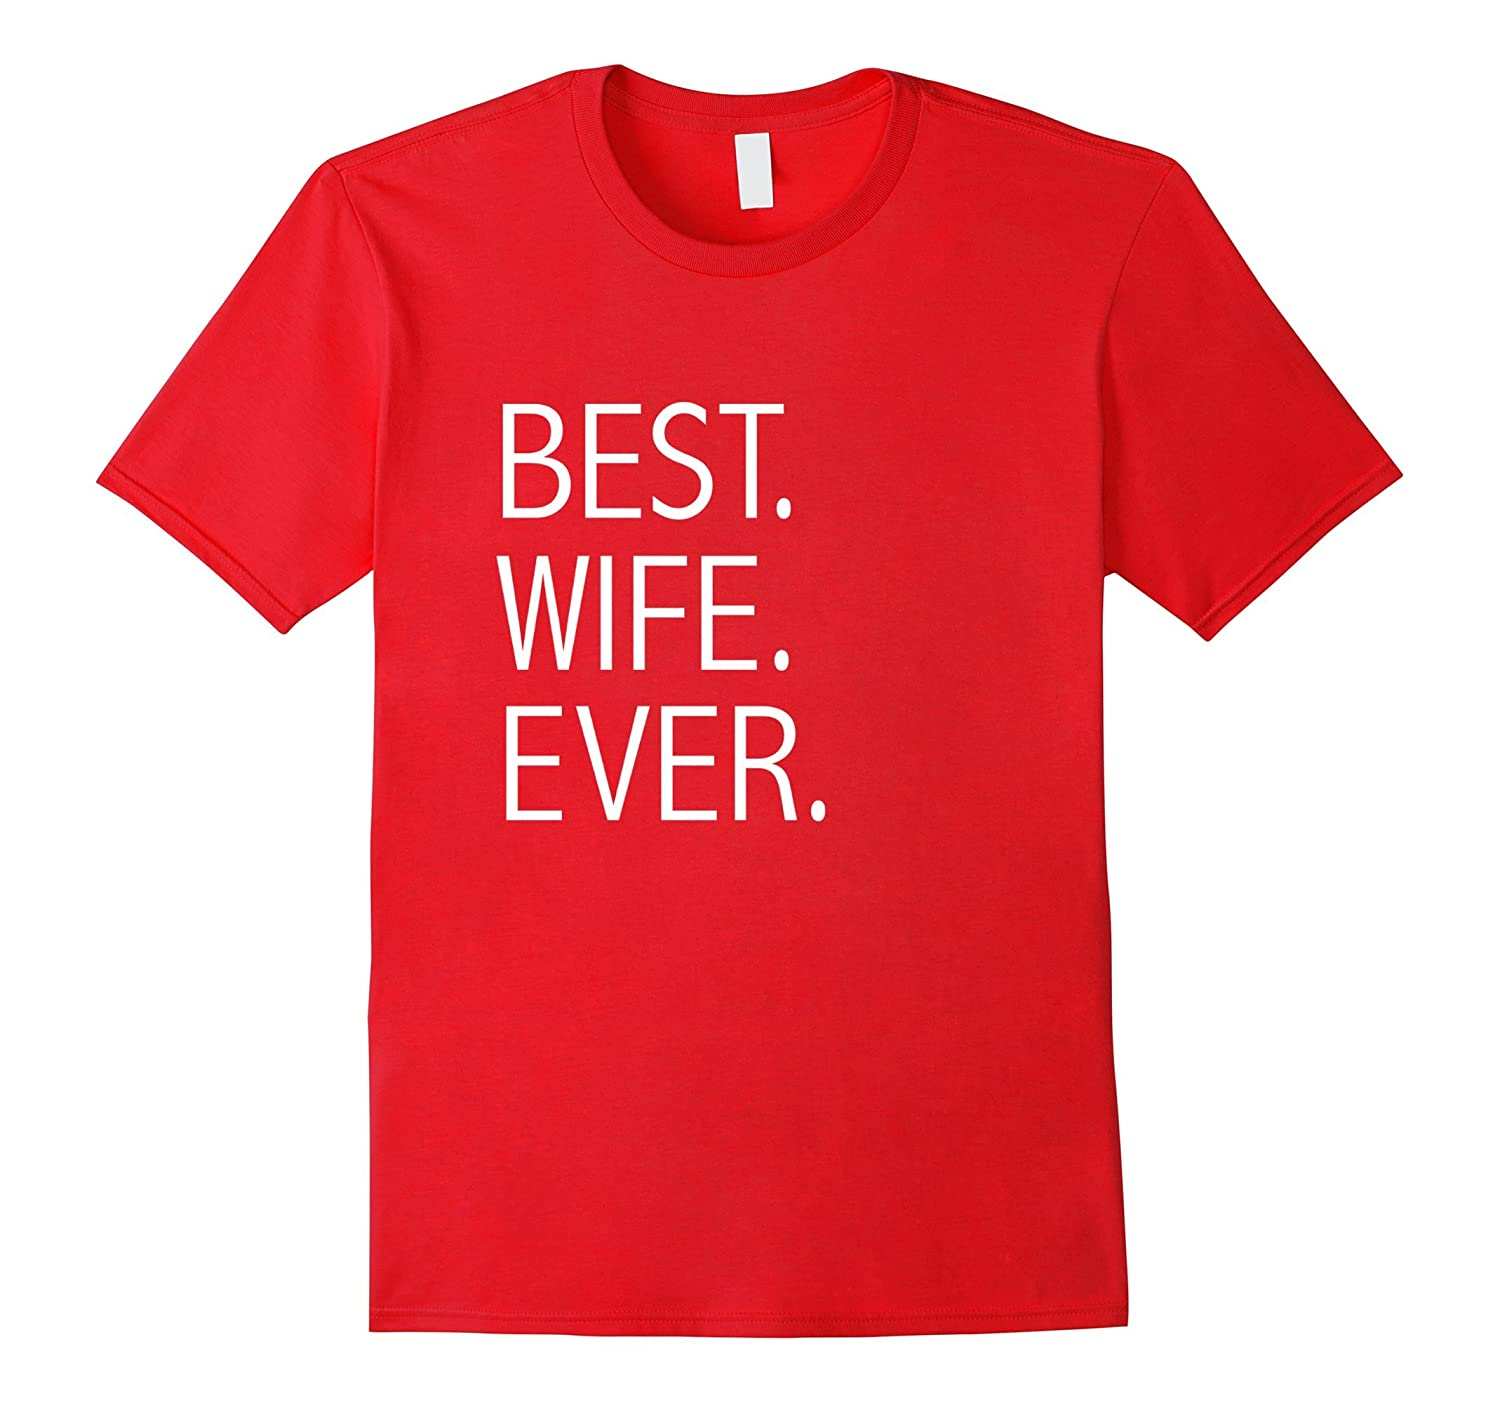 Best Wife Ever T-shirt Romantic Valentine's Day Anniversary